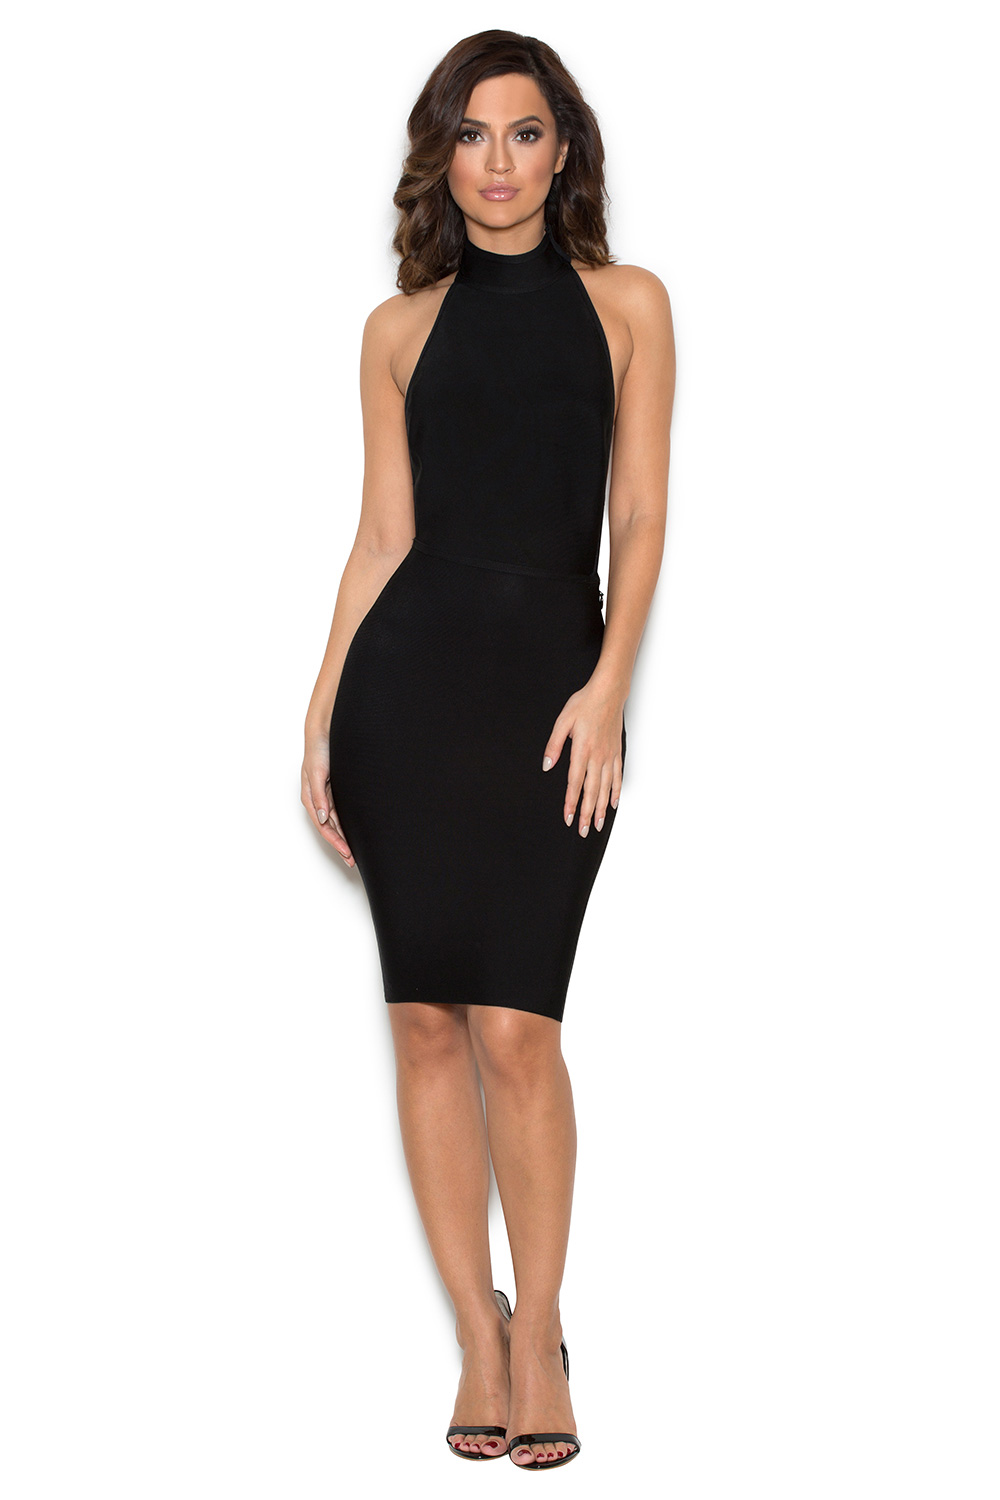 Clothing  Bandage Dresses  u0026#39;Eleniu0026#39; Black Low Back Halter Bandage Dress